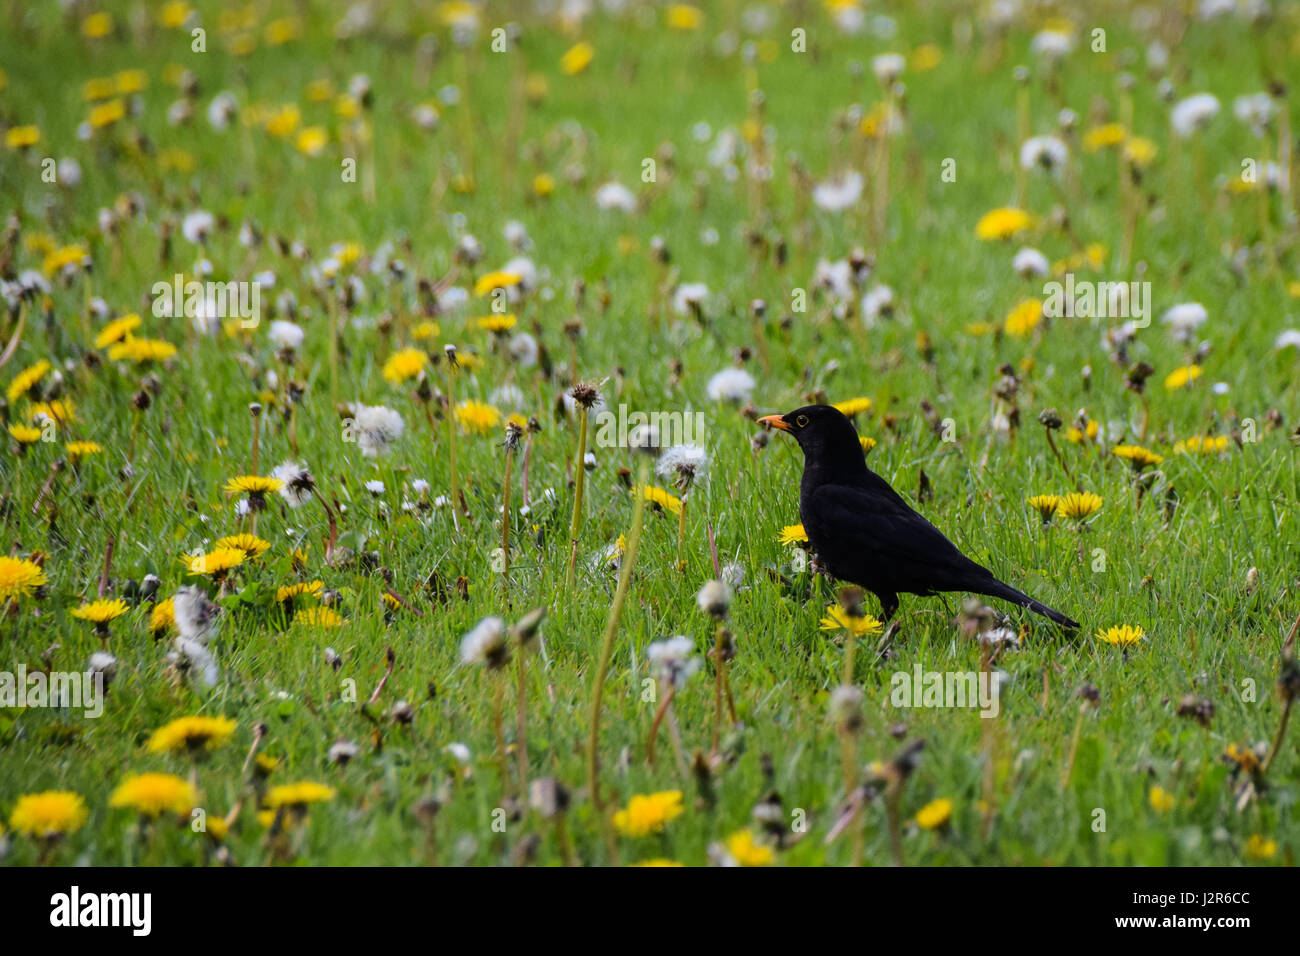 Blackbird wild bird searching for worms but with a beak full of flies - Stock Image